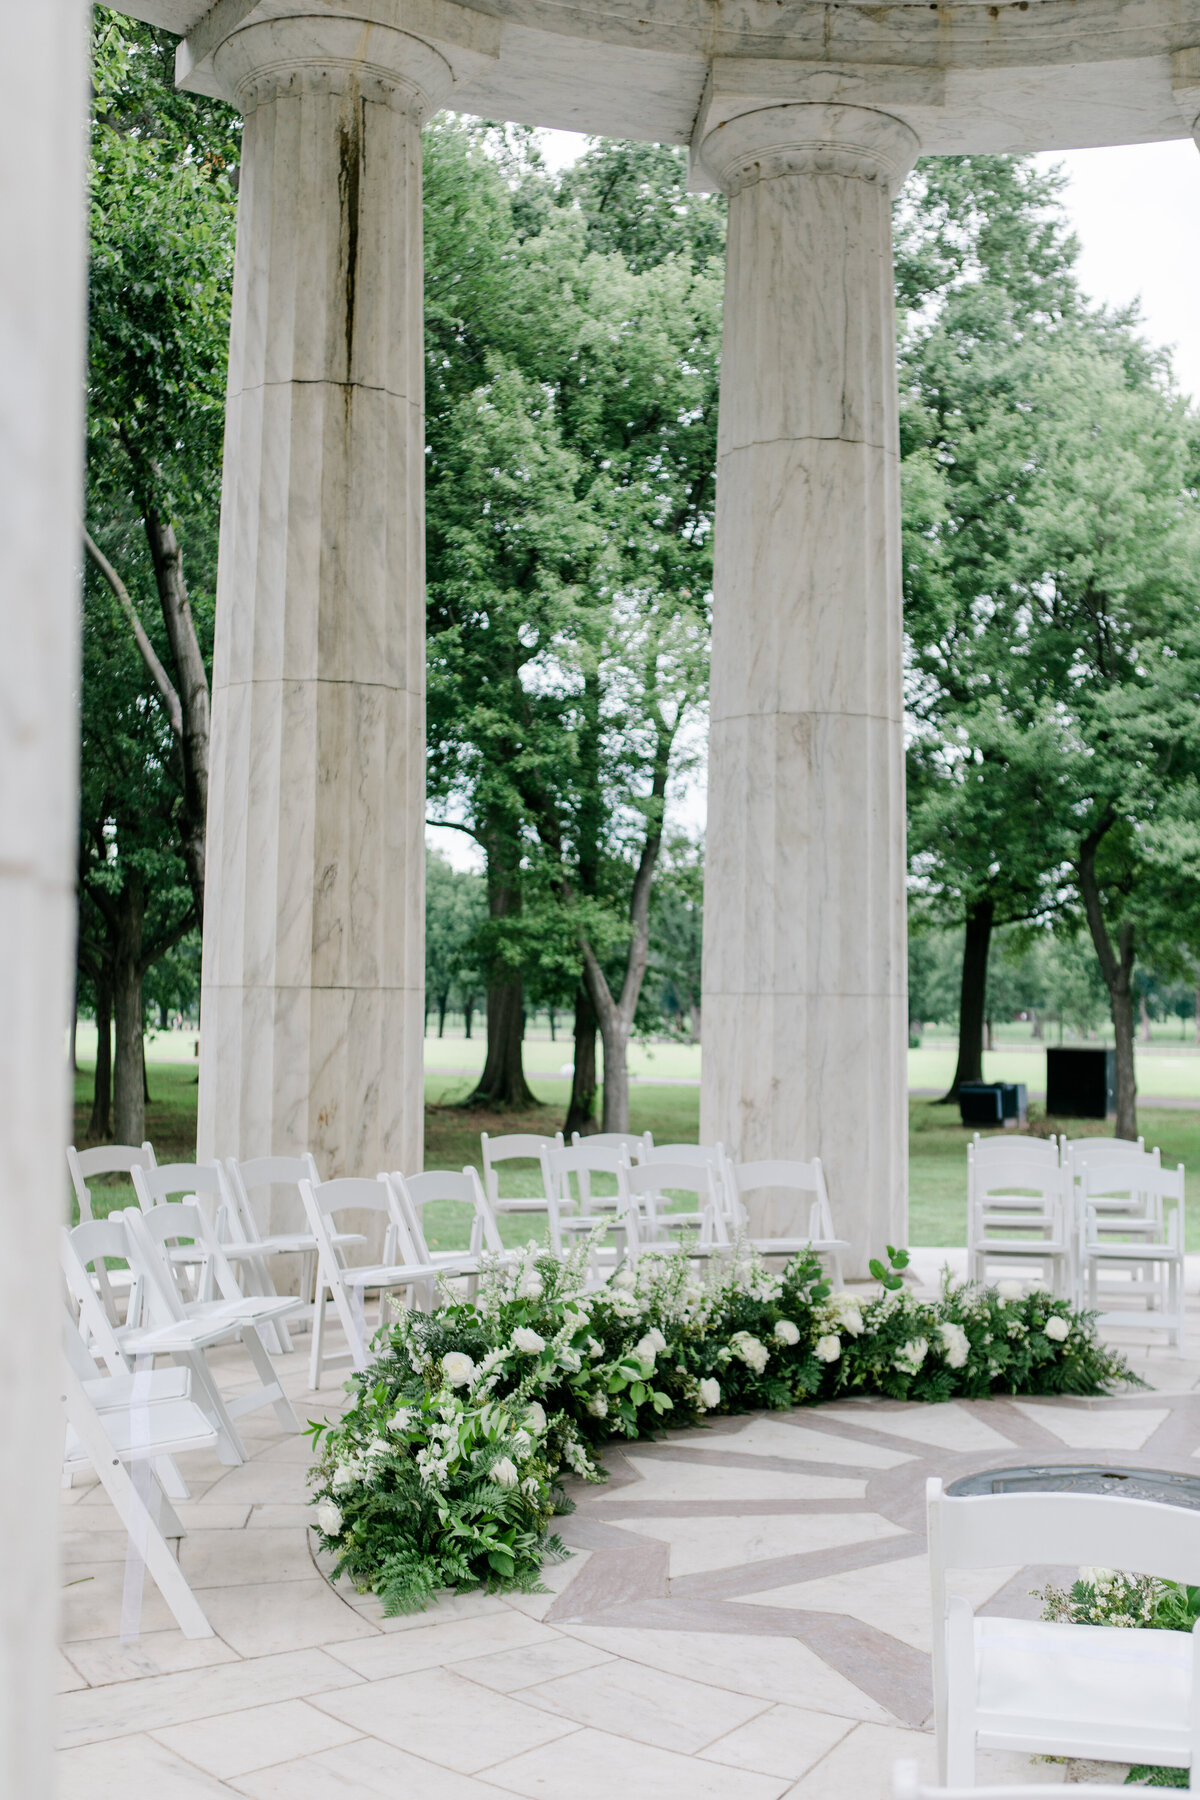 Solomon_Tkeyah_Micro_COVID_Wedding_Washington_DC_War_Memorial_MLK_Memorial_Linoln_Memorial_Angelika_Johns_Photography-4952